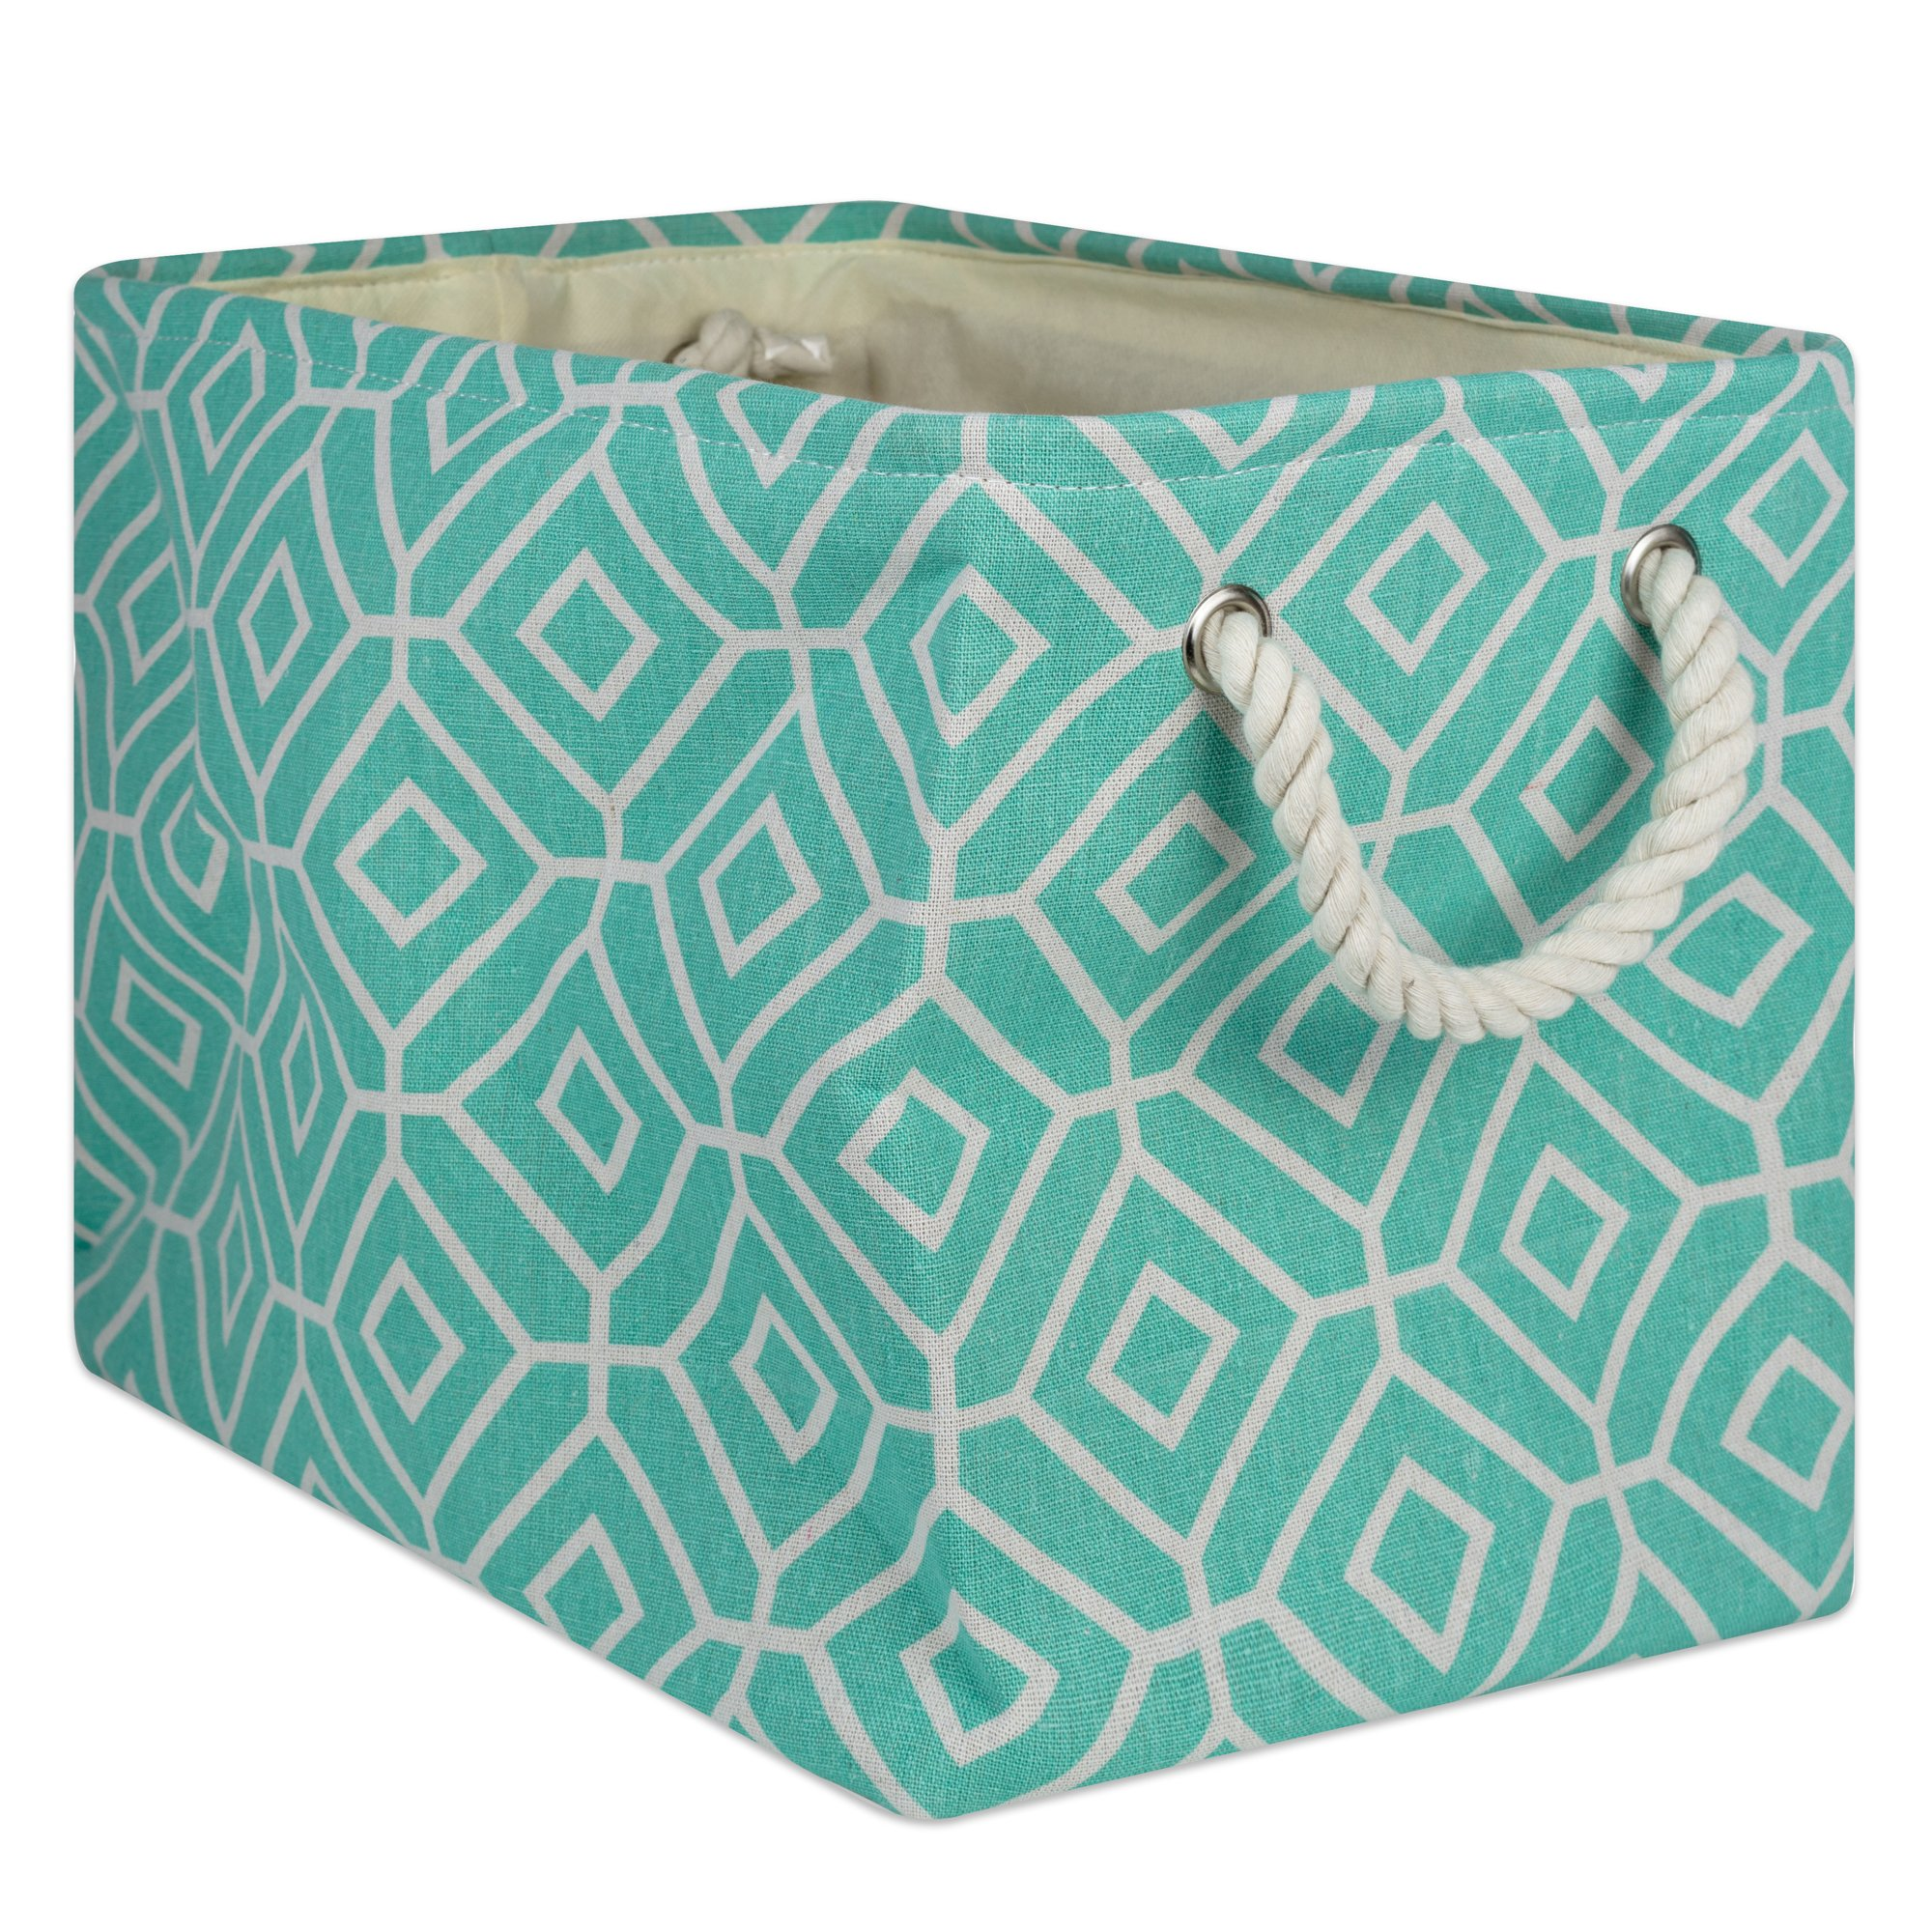 DII Collapsible Polyester Storage Basket or Bin with Durable Cotton Handles, Home Organizer Solution for Office, Bedroom, Closet, Toys, and Laundry, Medium - 16 x 10 x 12, Stained Glass Aqua